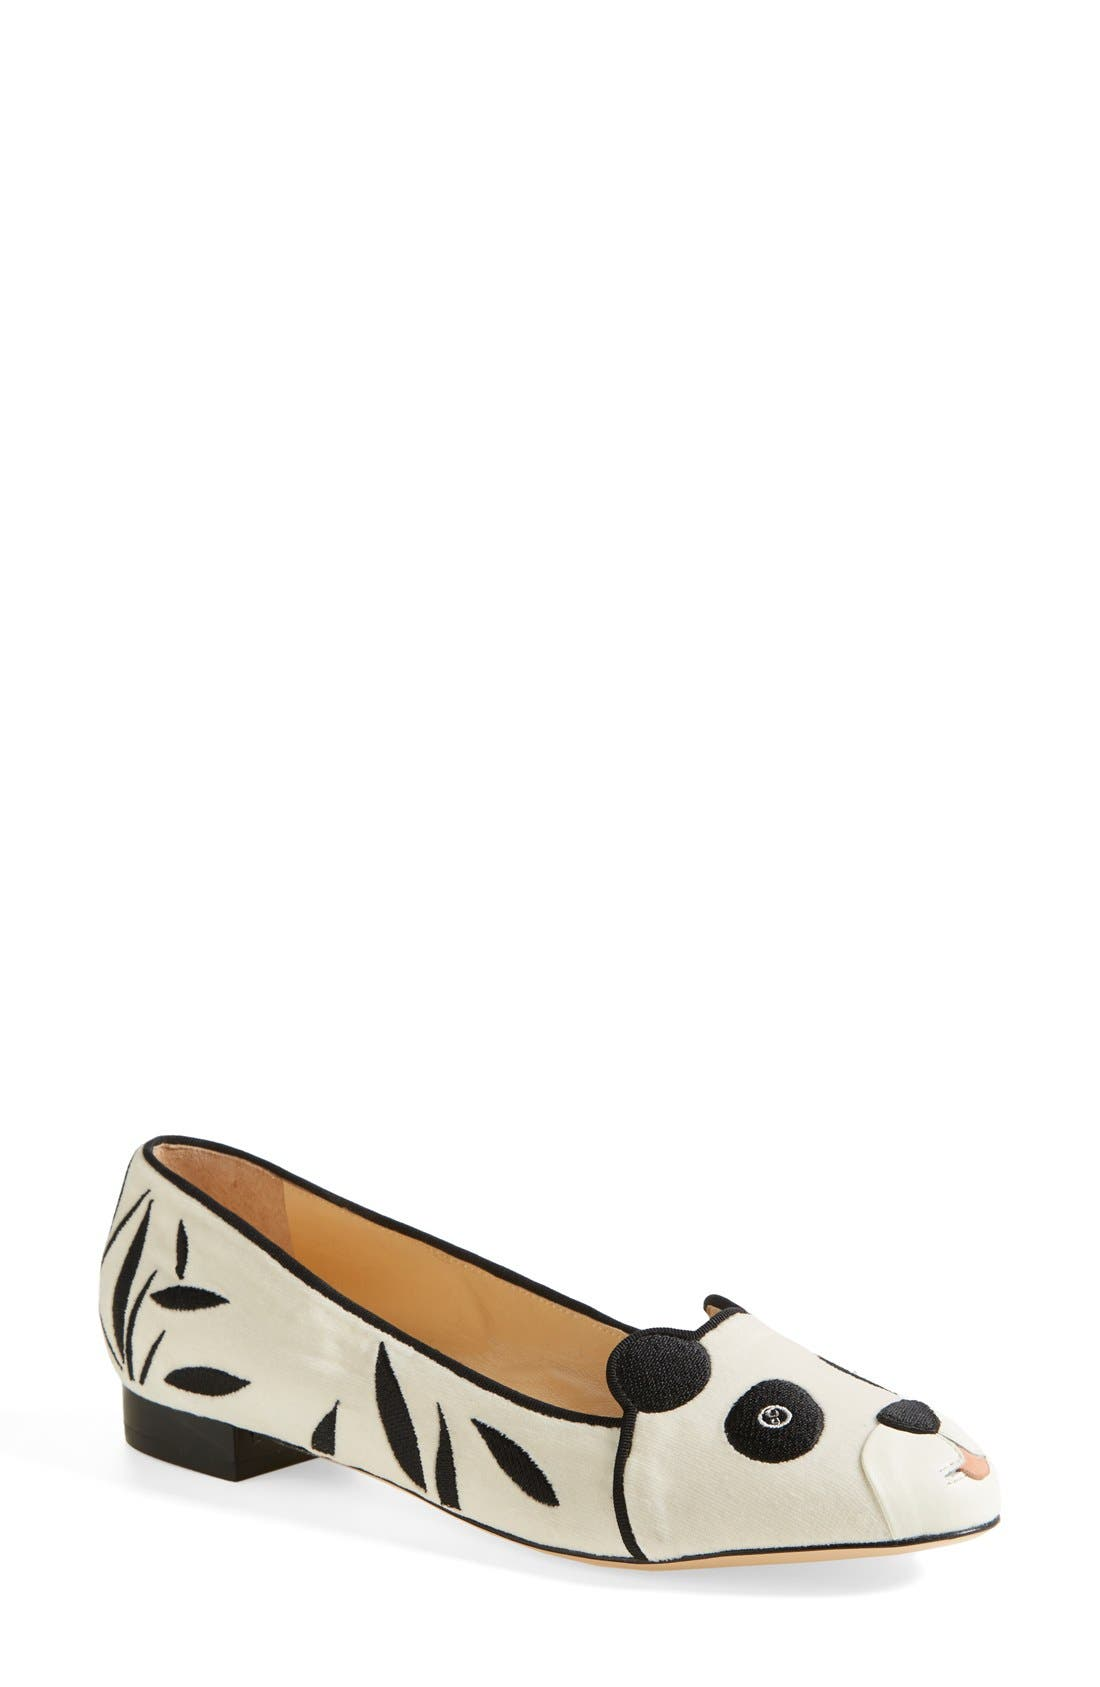 Alternate Image 1 Selected - Charlotte Olympia 'Panda' Silk Velvet & Calfskin Leather Flat (Women)